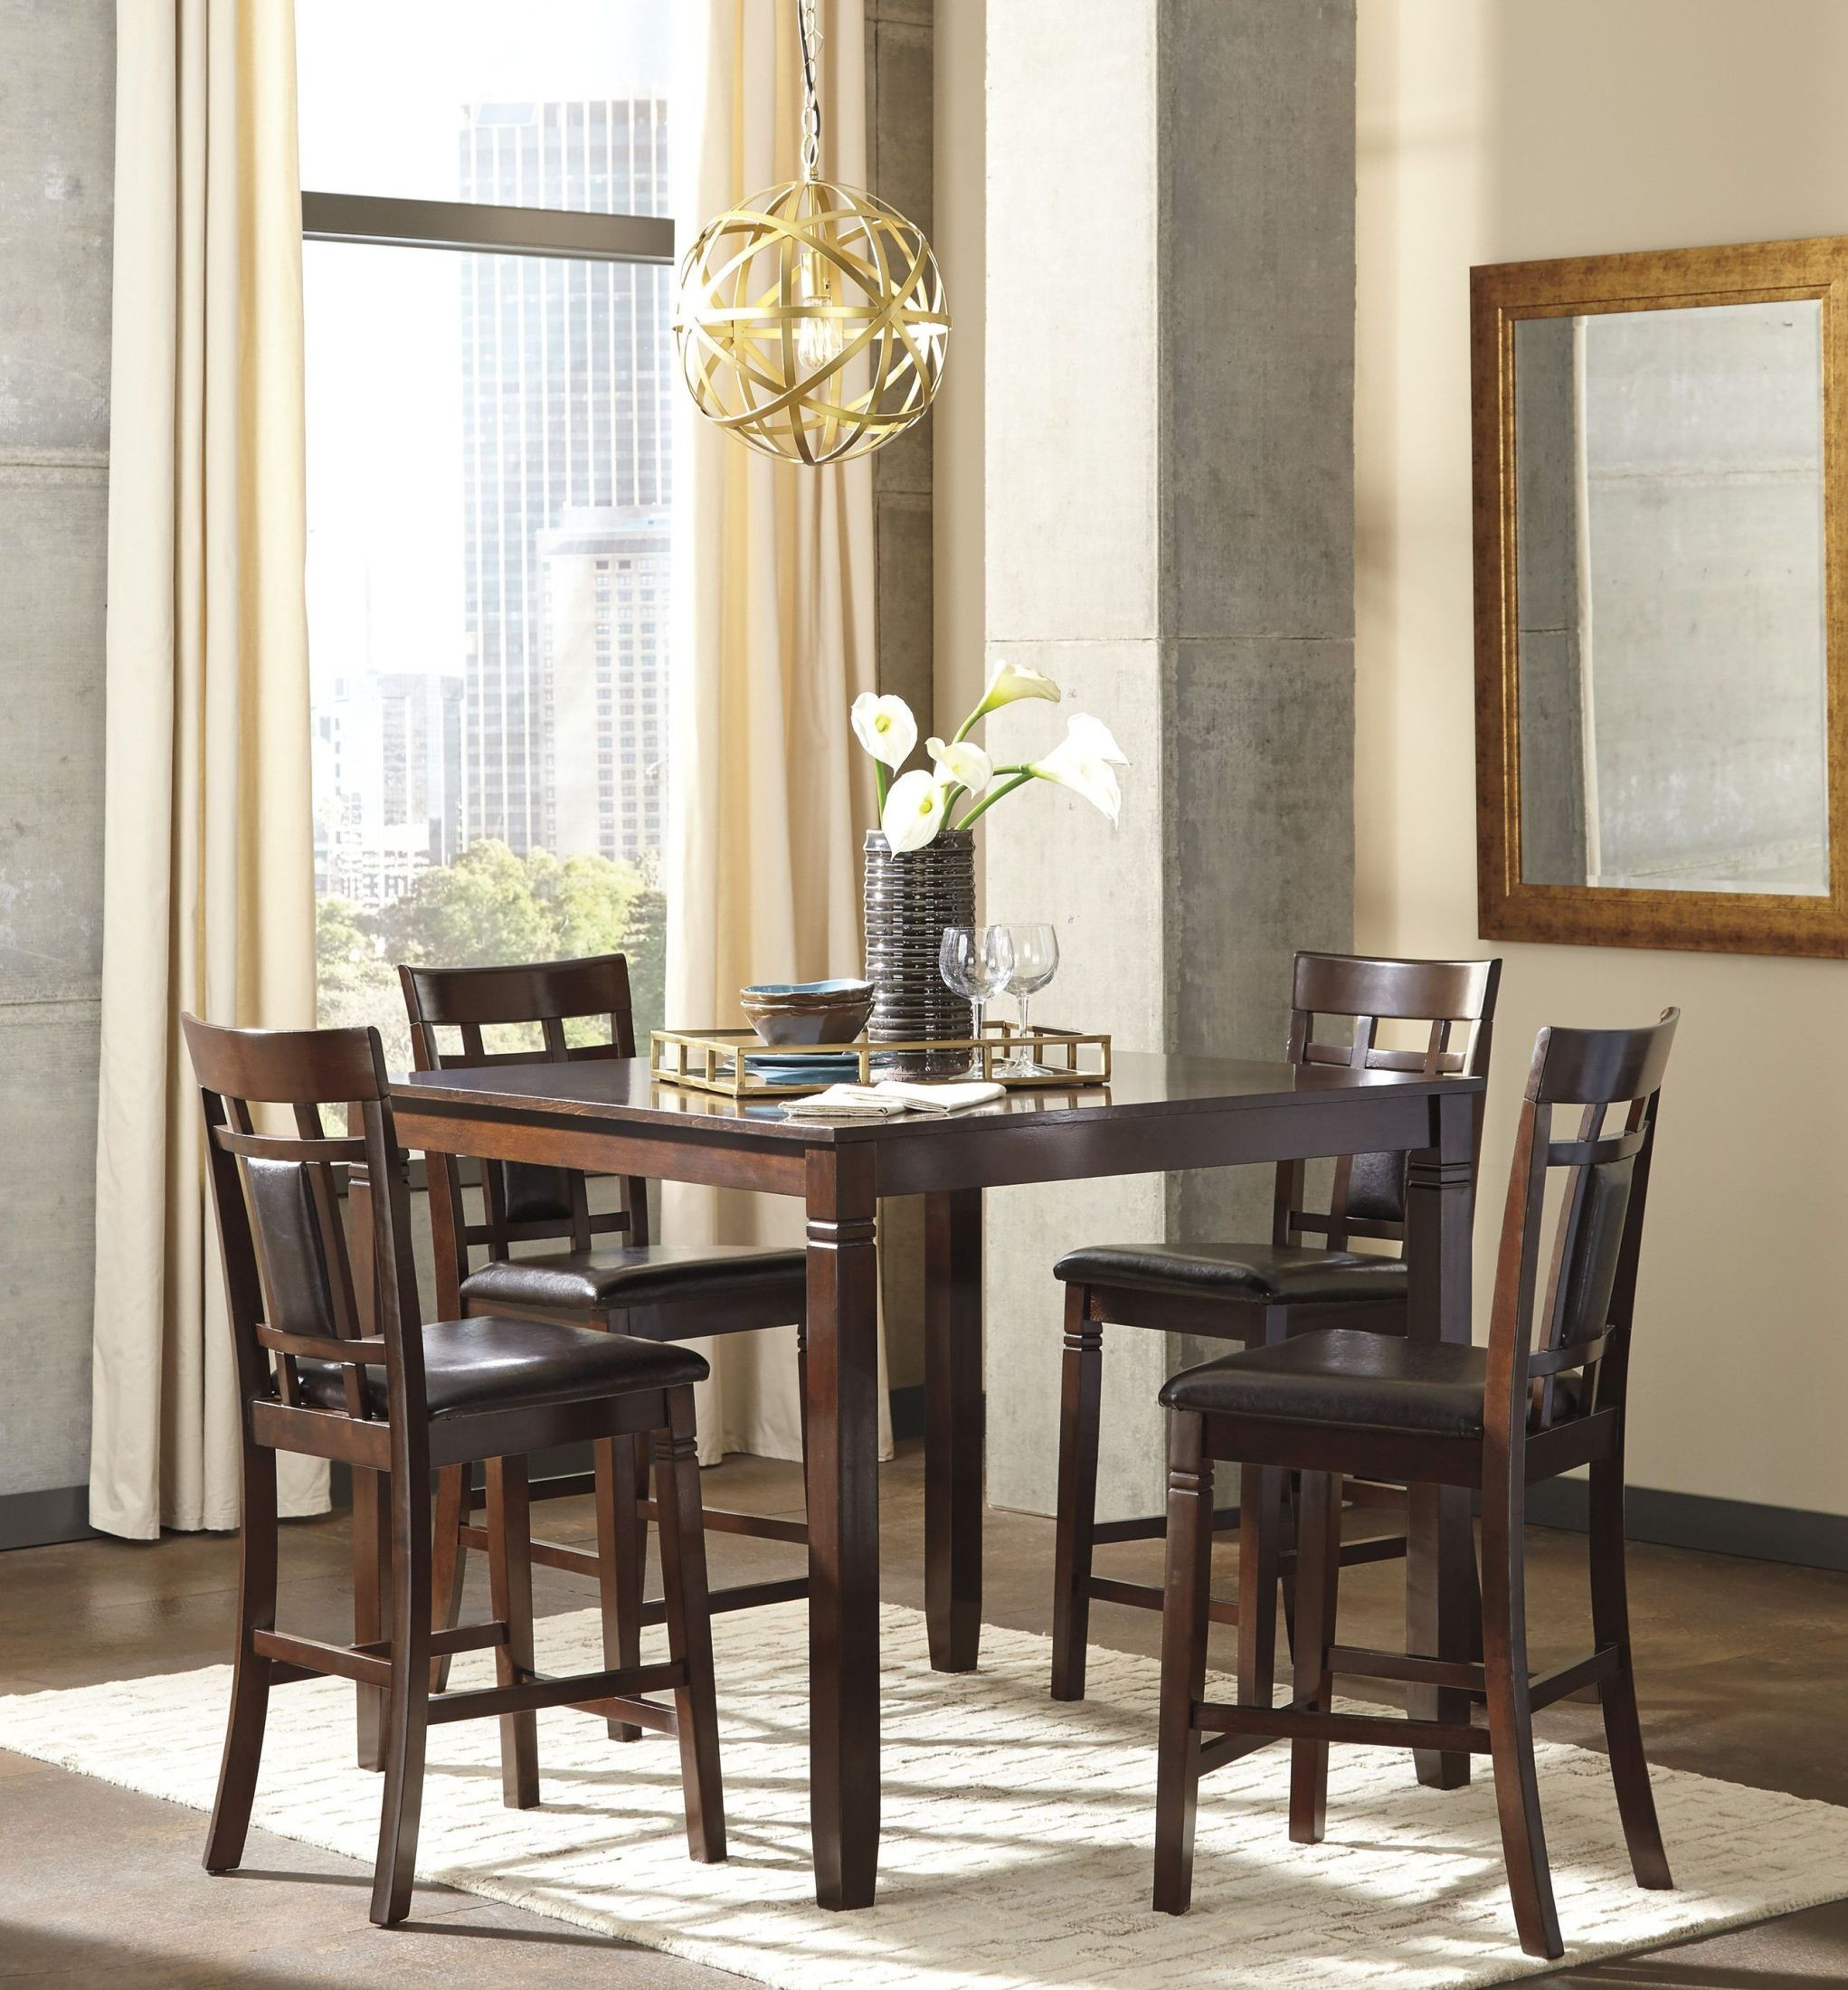 High Dining Room Chairs Captivating Bennox Brown 5 Piece Counter Height Dining Room Set From Ashley . Review